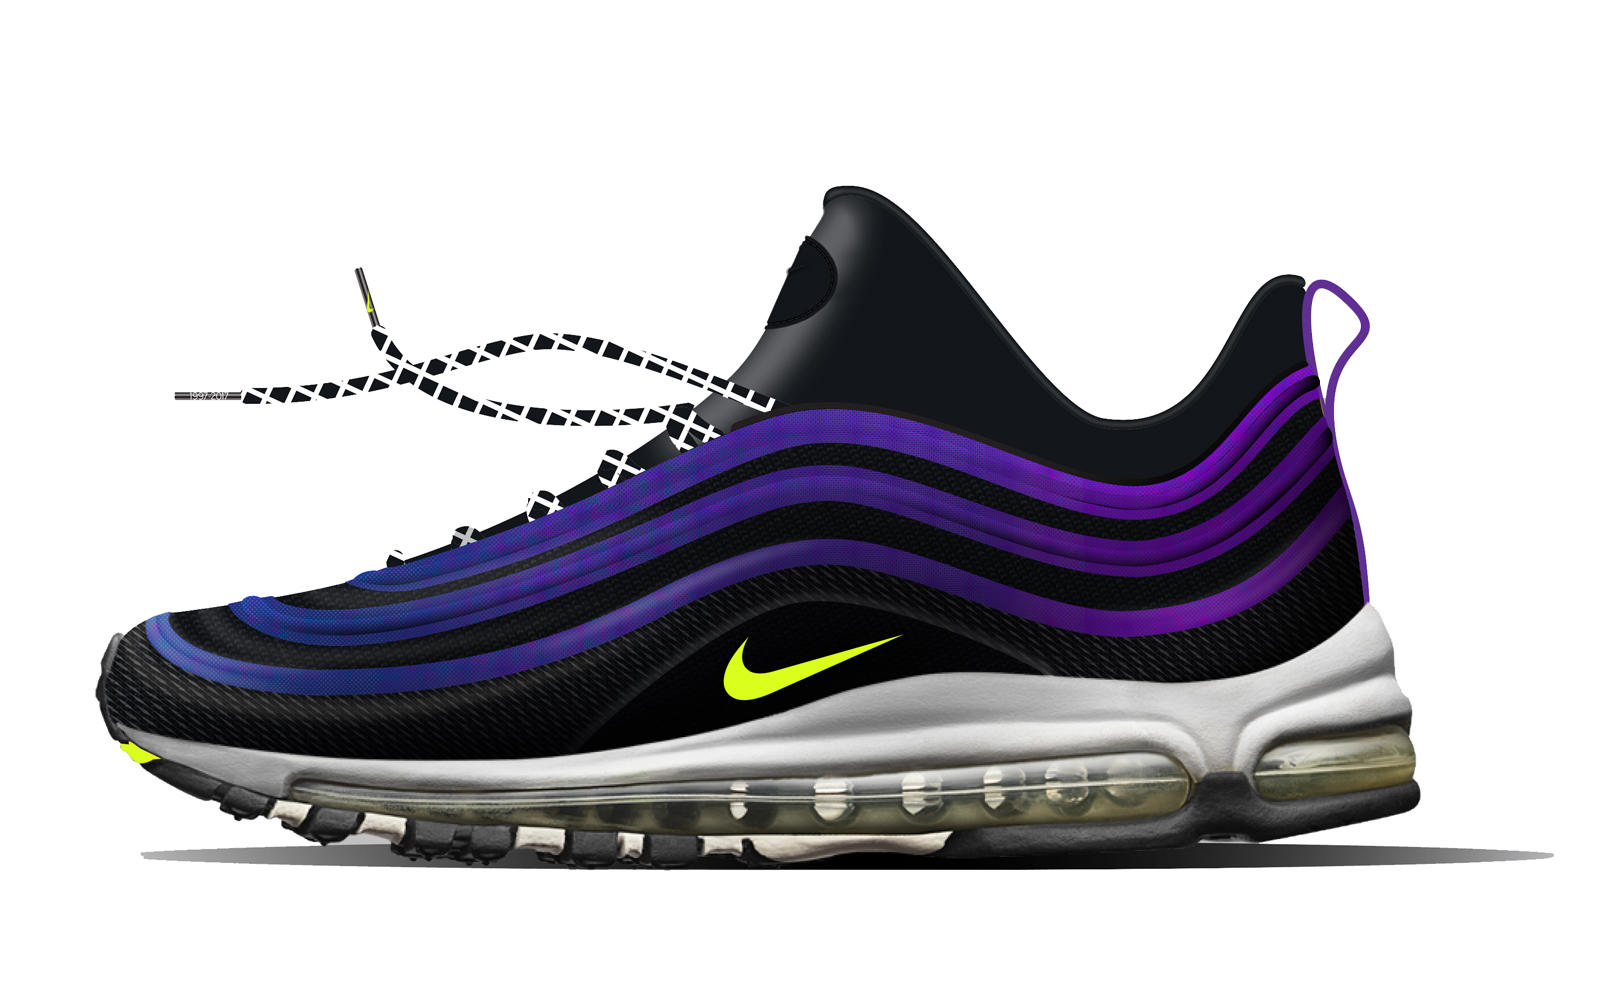 Konno's shoe combines a Flyknit upper and Air Max 97 airbag with  inspiration from Tokyo's club scene and street culture.